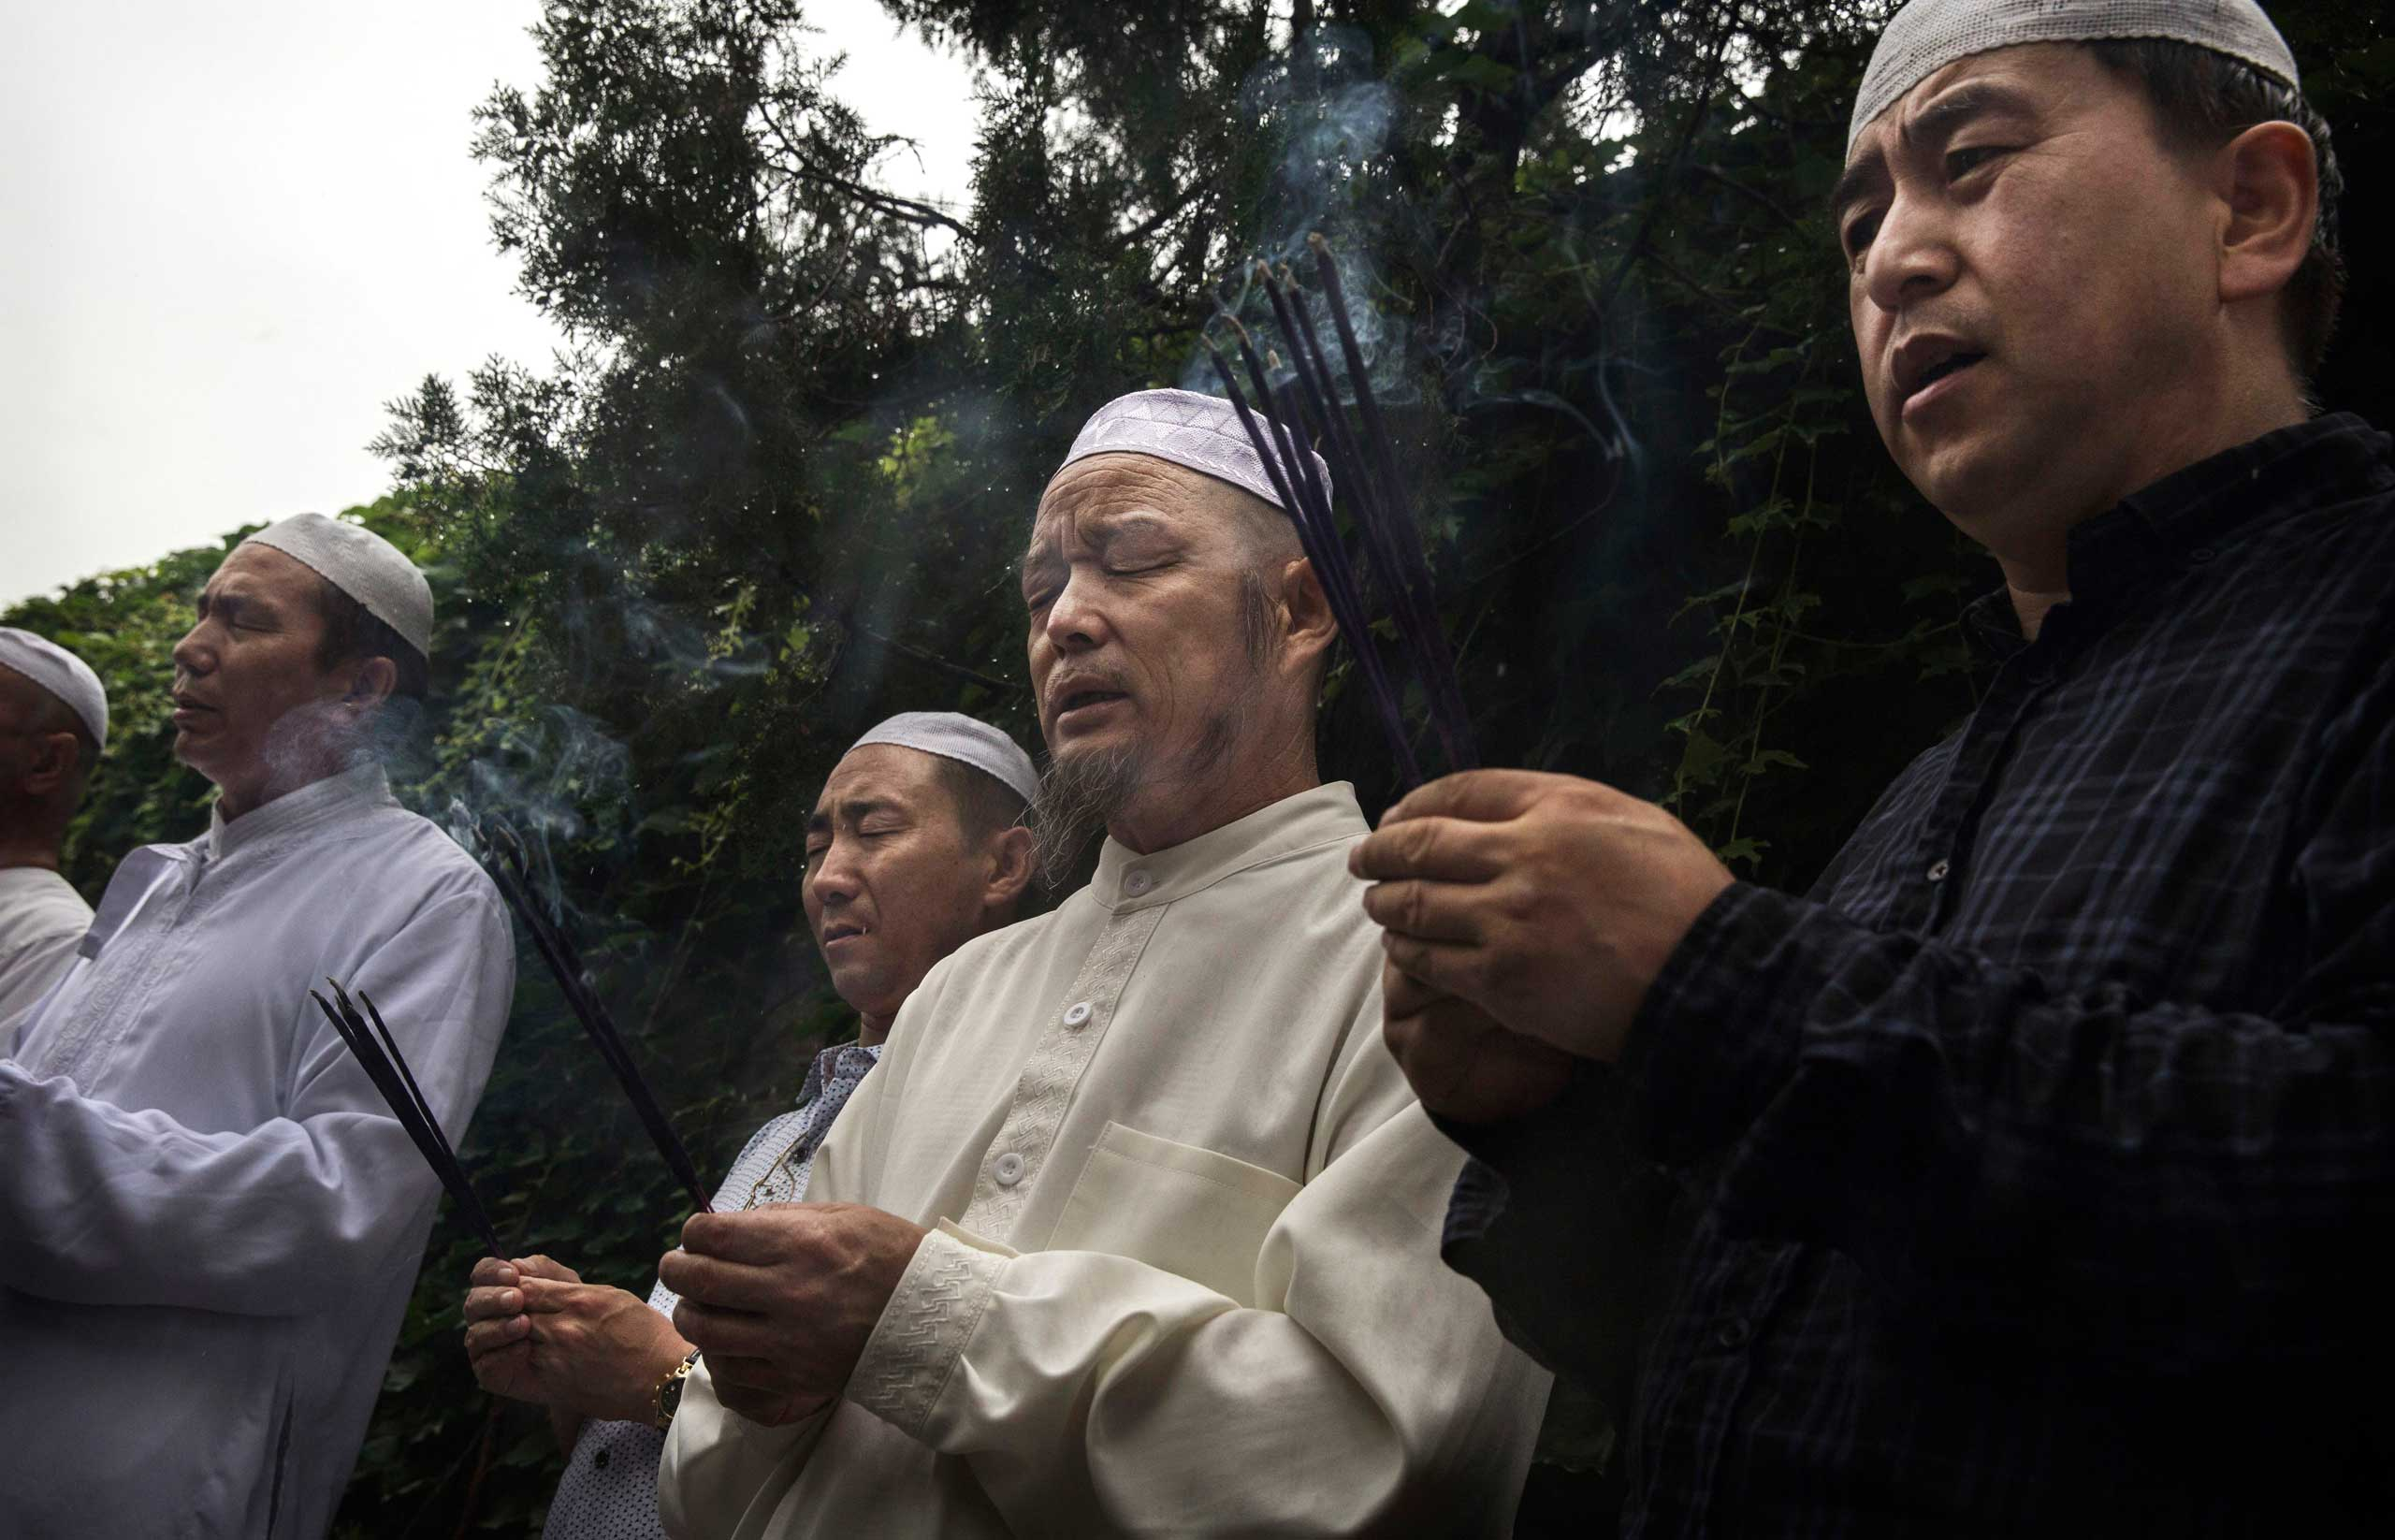 Chinese Muslims of the Hui ethnic minority hold incense as they pray at the Imam's Tomb before the last Friday prayers of the holy fasting month of Ramadan at the historic Niujie Mosque on July 17, 2015 in Beijing.